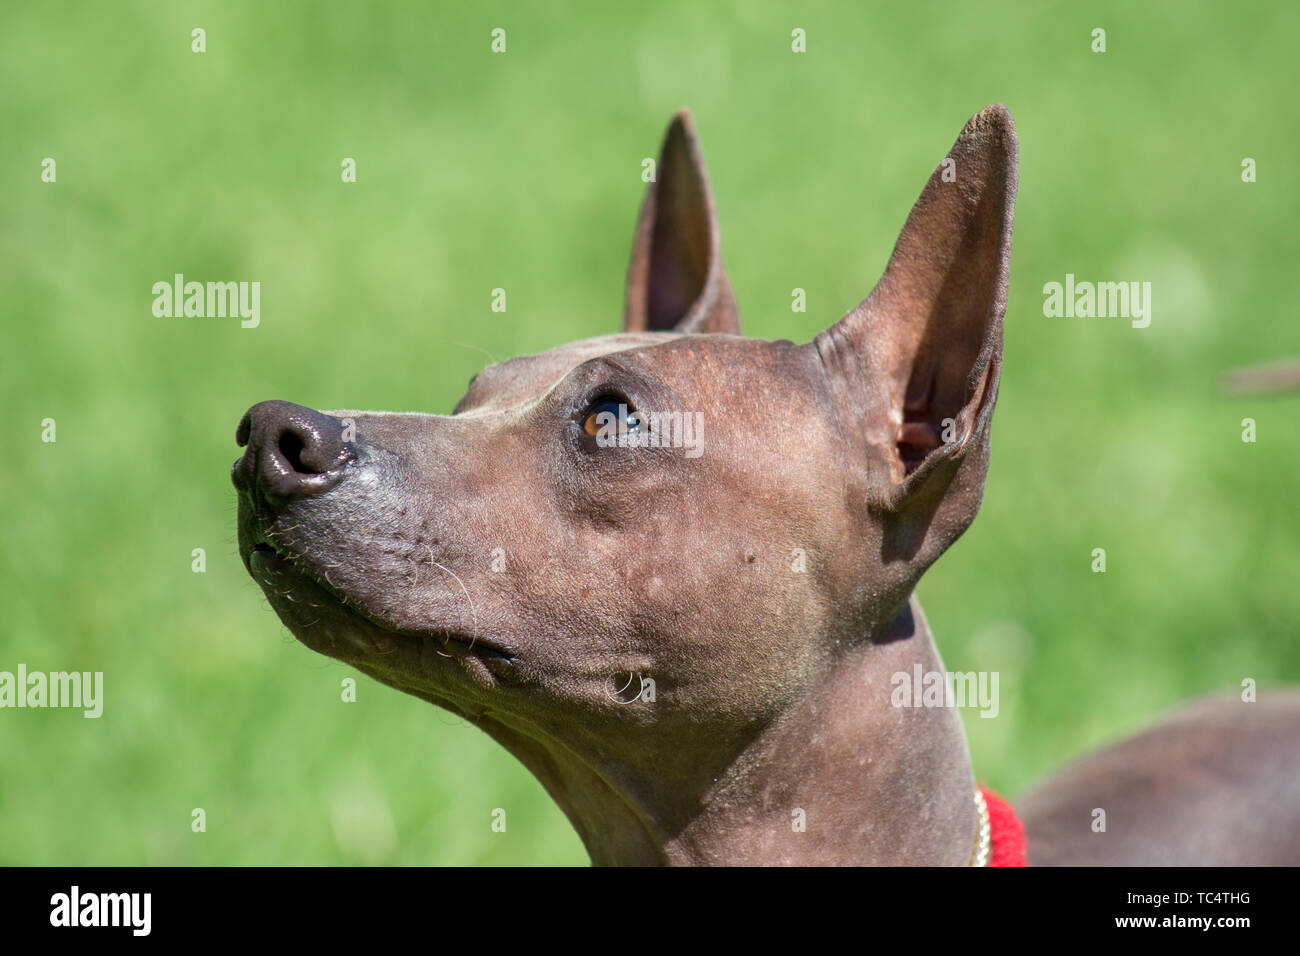 Portrait of american hairless terrier puppy. Pet animals. Purebred dog. - Stock Image